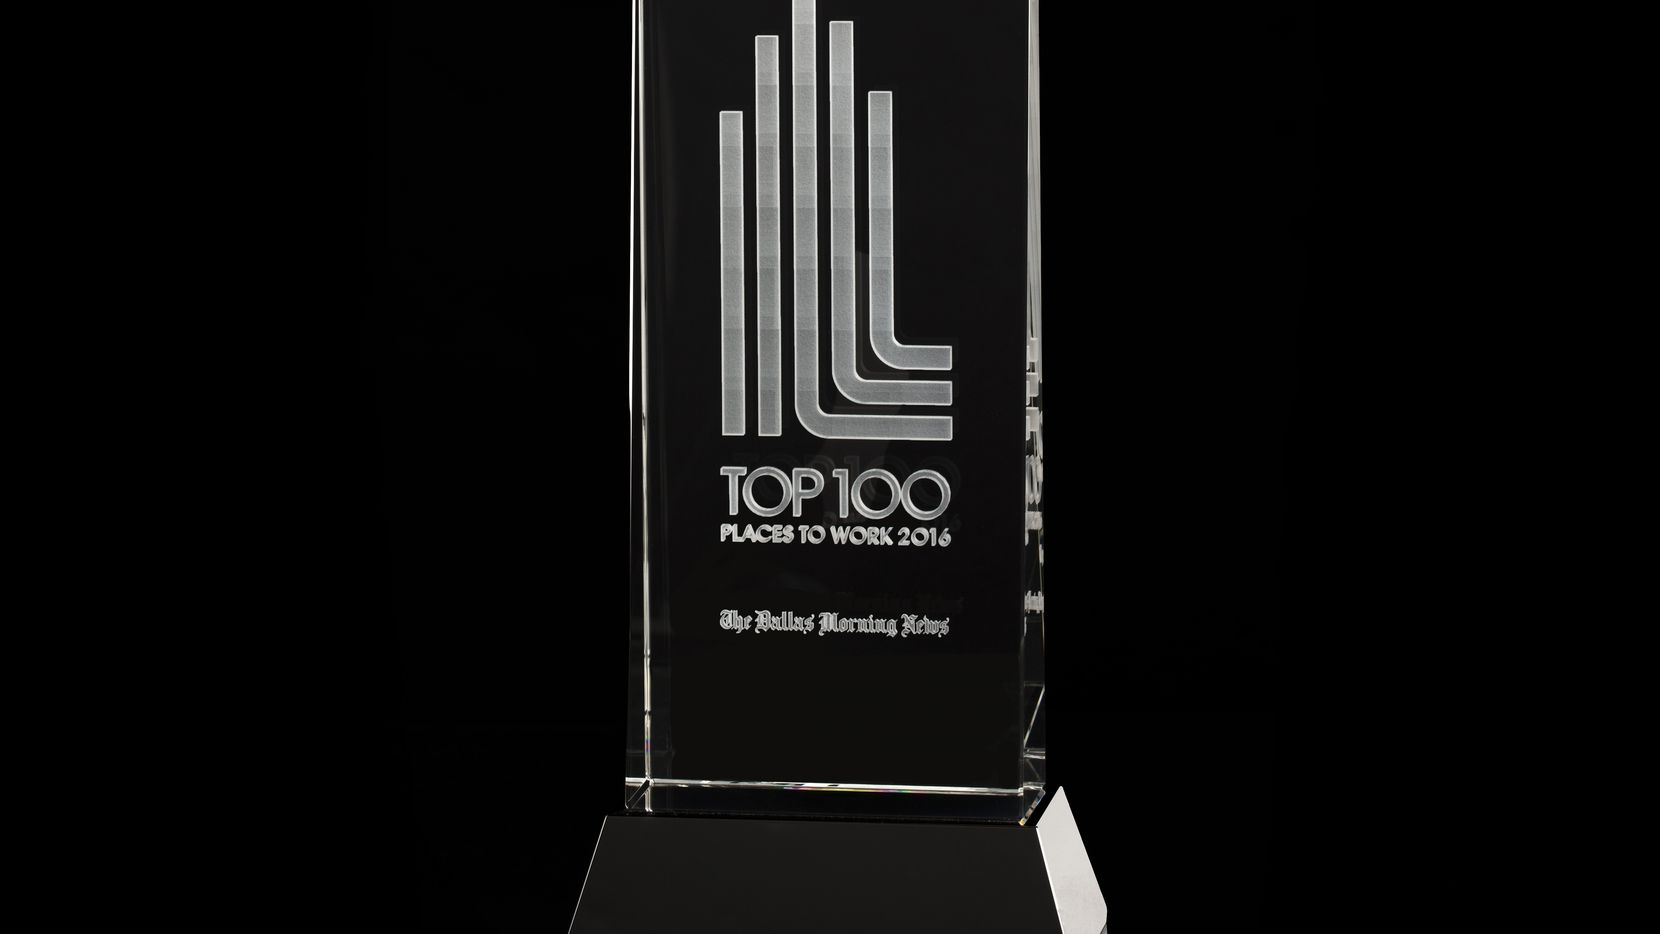 The Top 100 Places to Work trophy for 2016